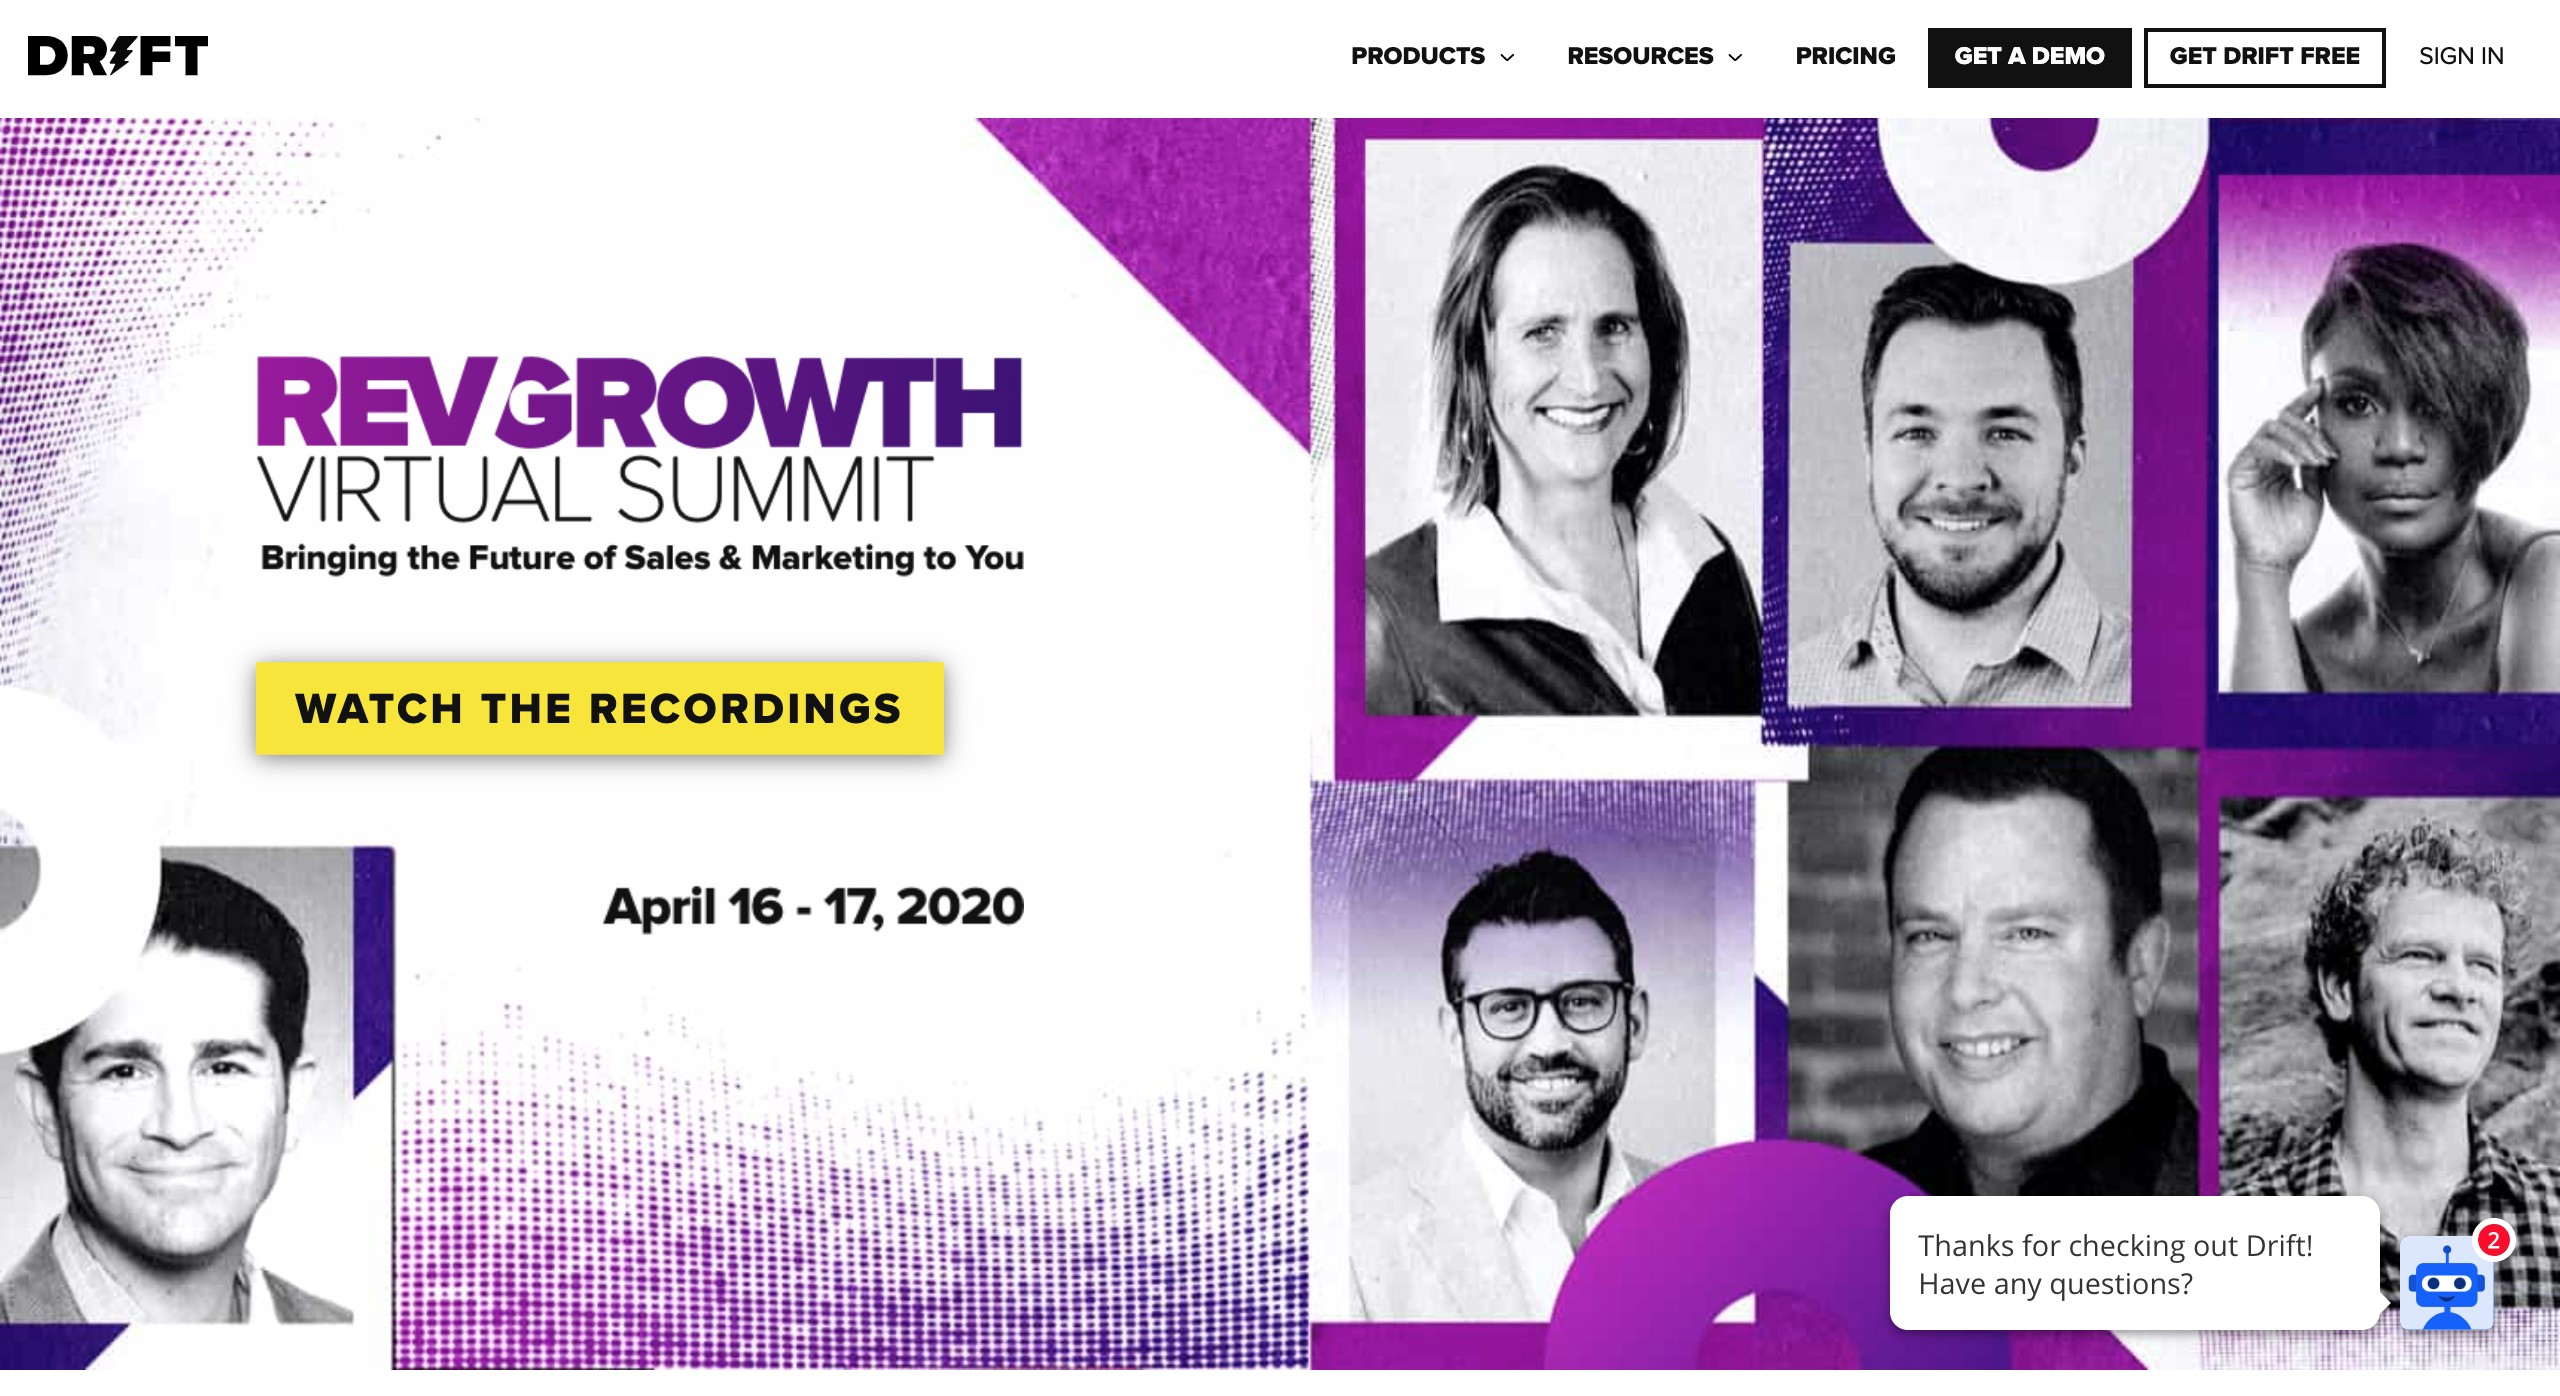 Drift | RevGrowth Virtual Summit